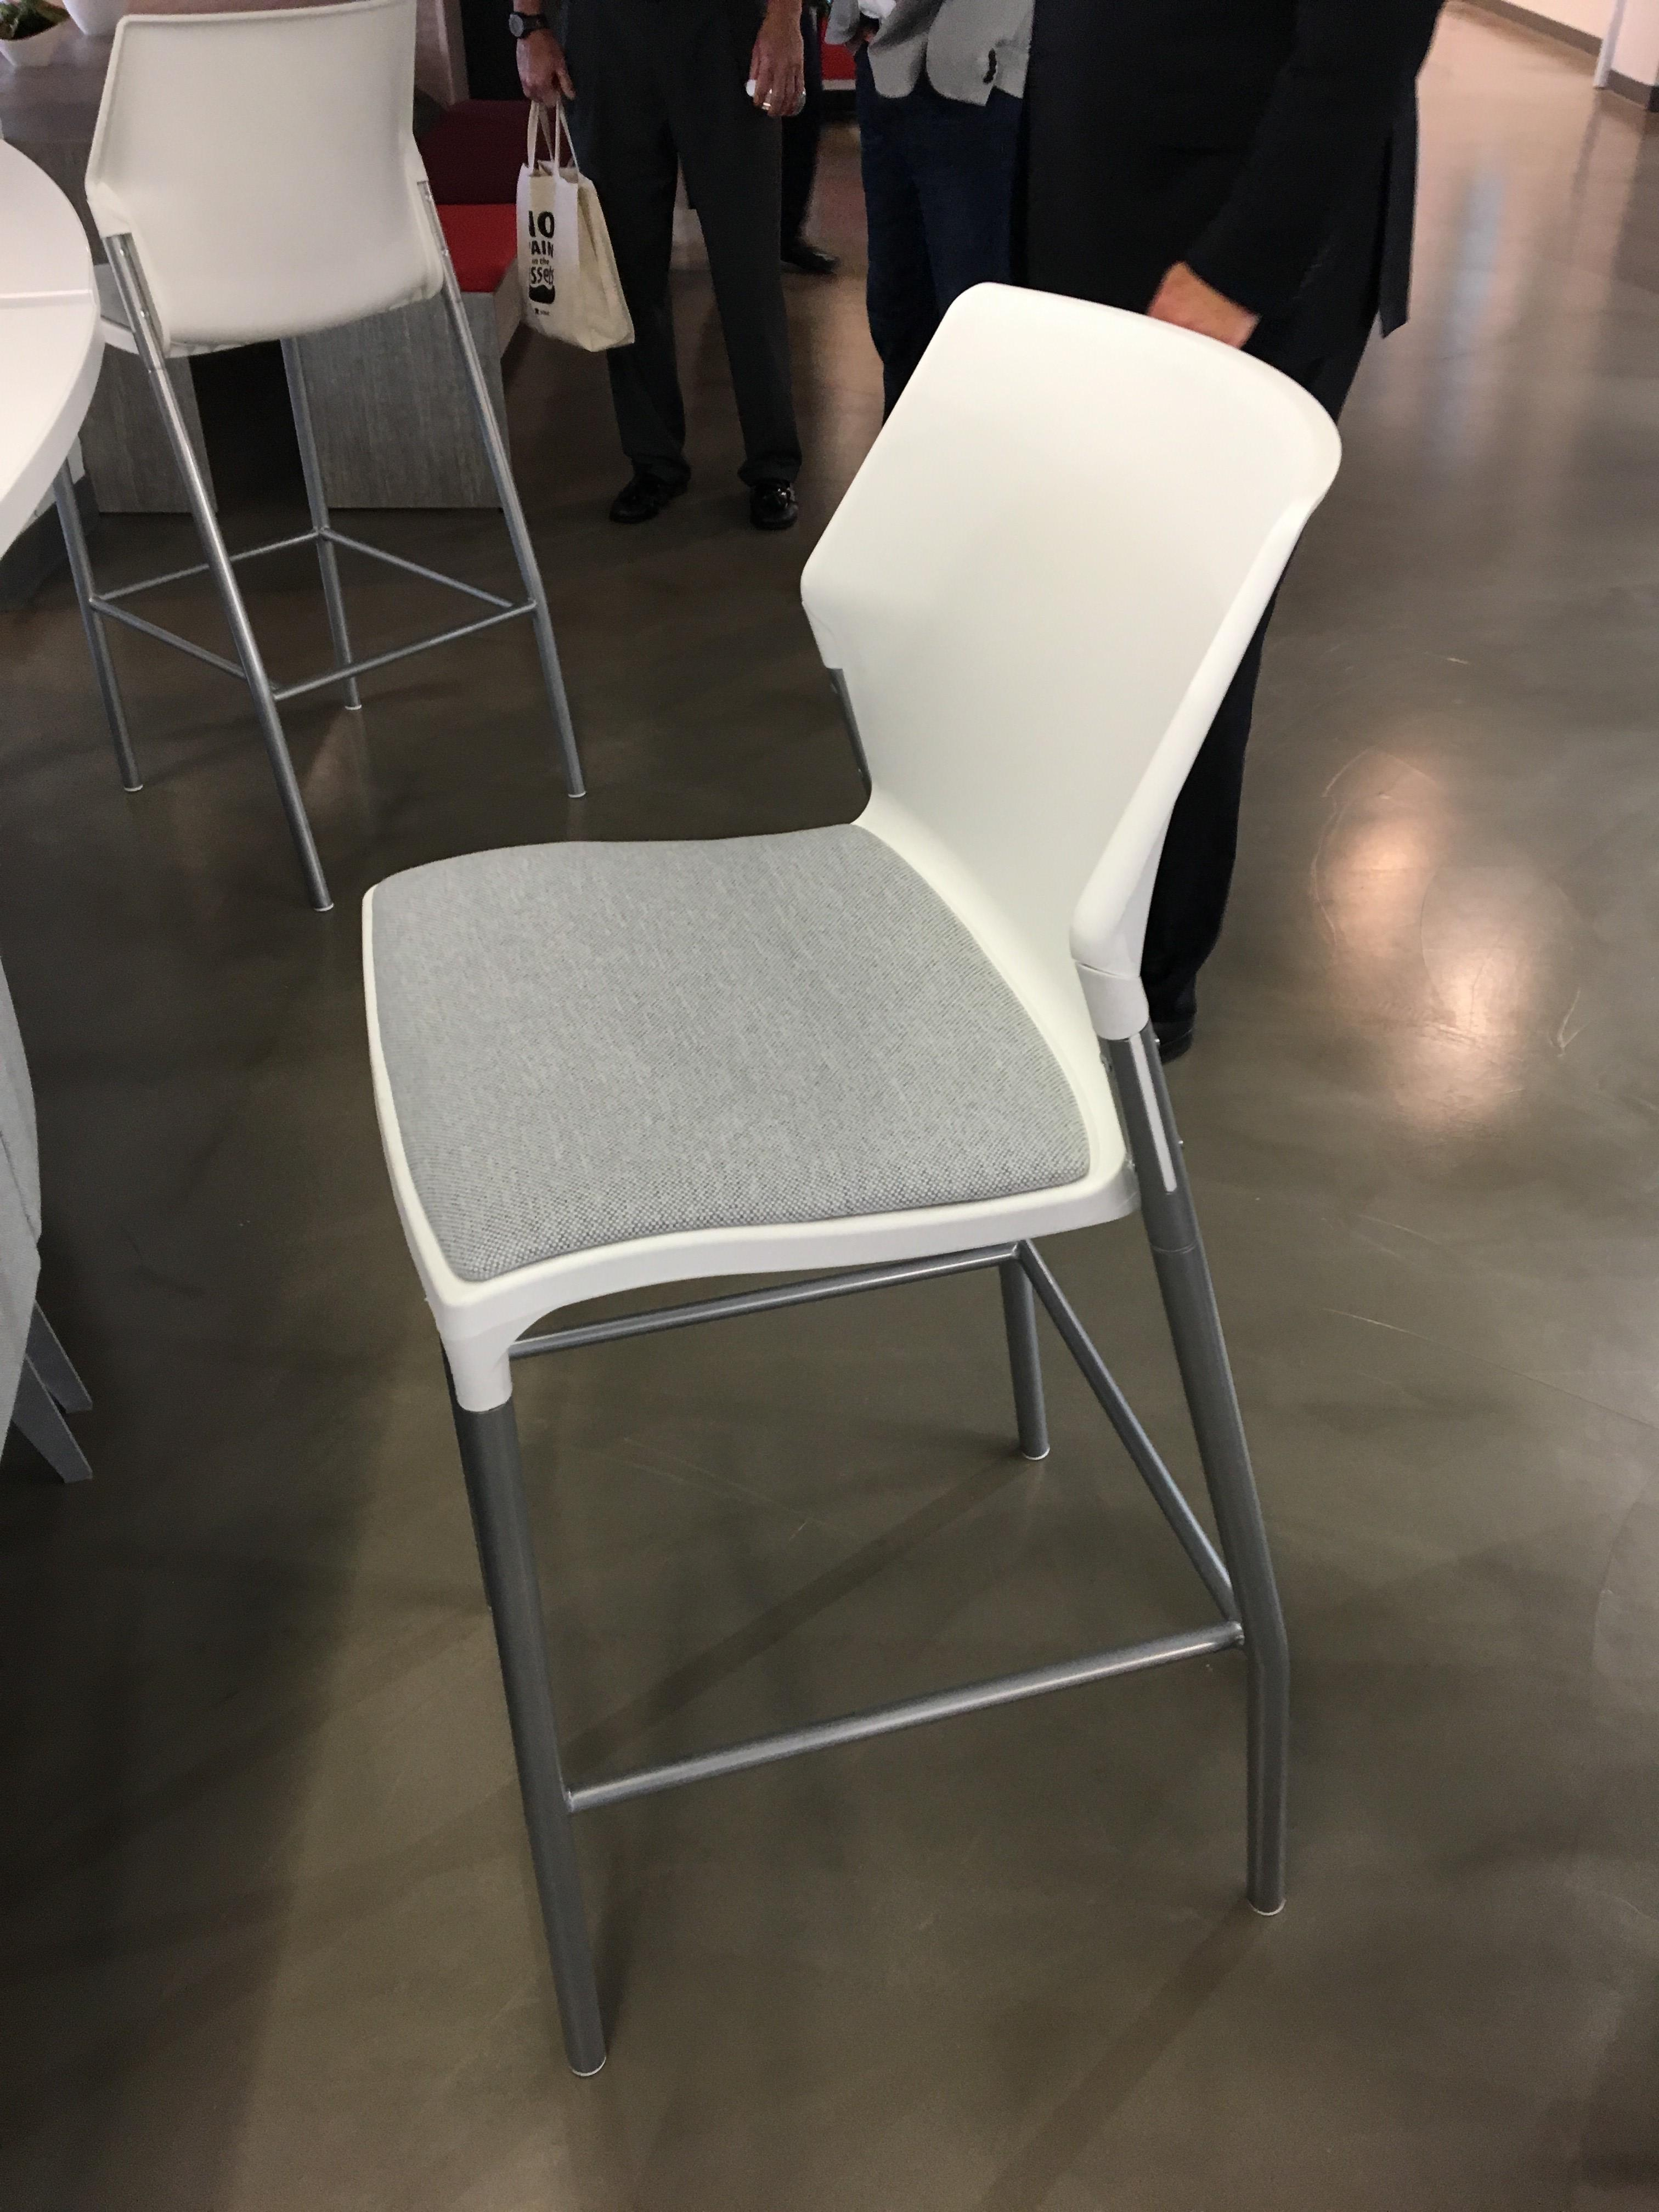 Lacasse io chair